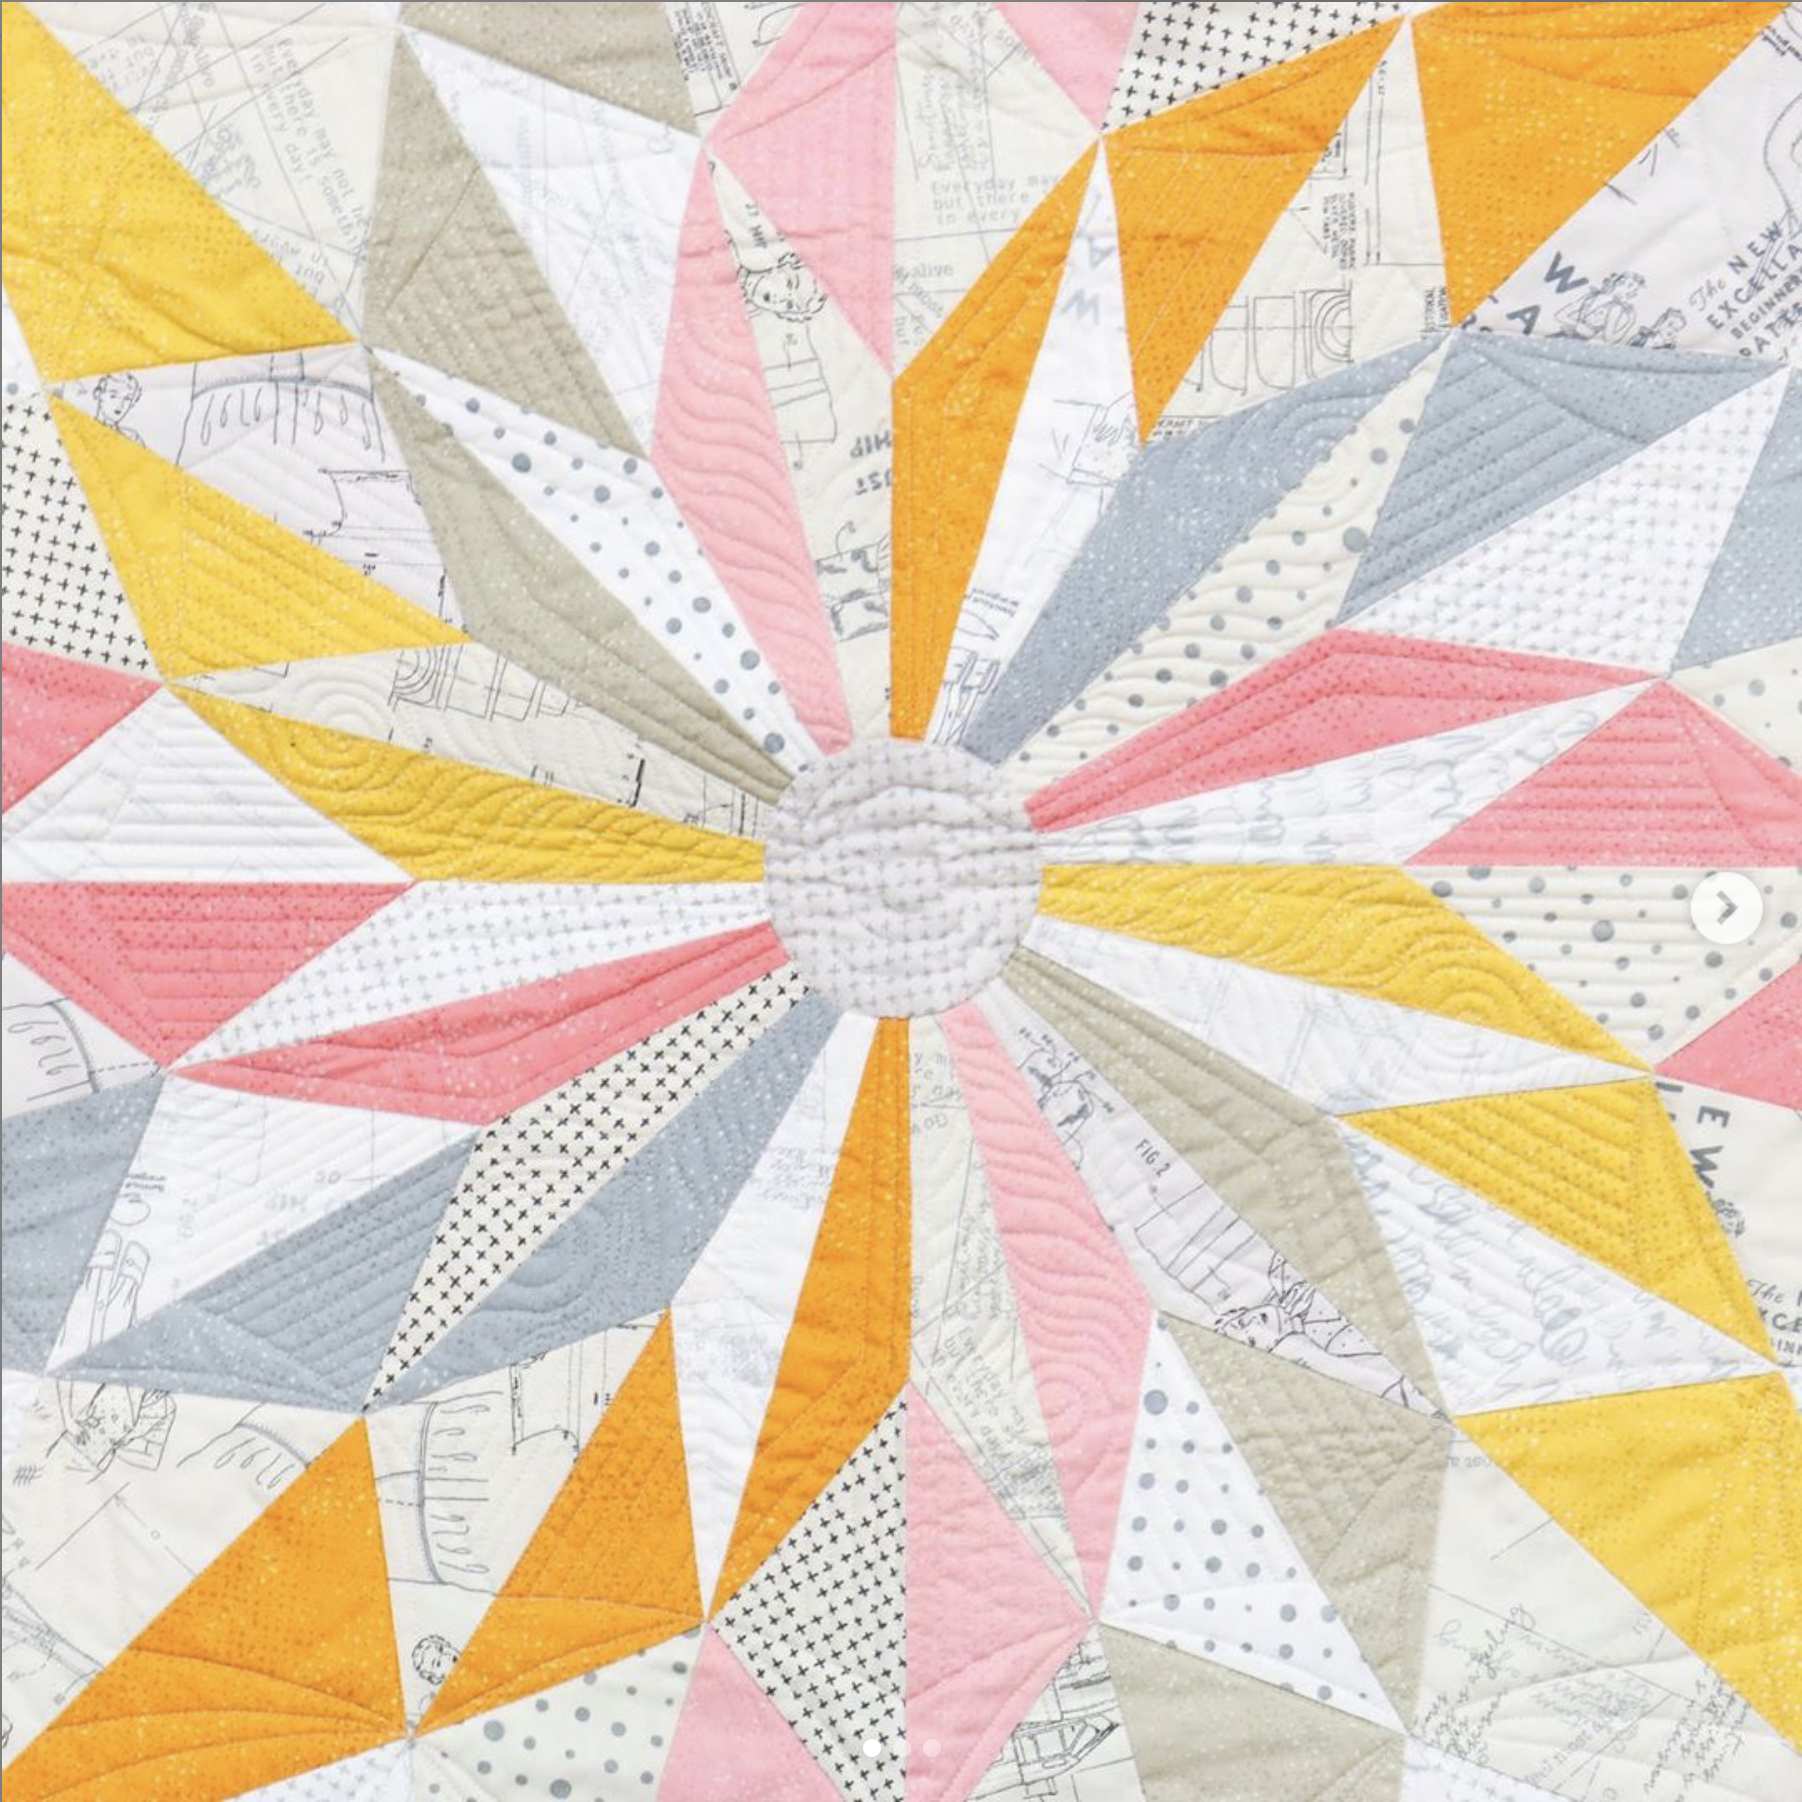 Zen Chic's Winter Star quilt was an exclusive project done for Rhinetex.